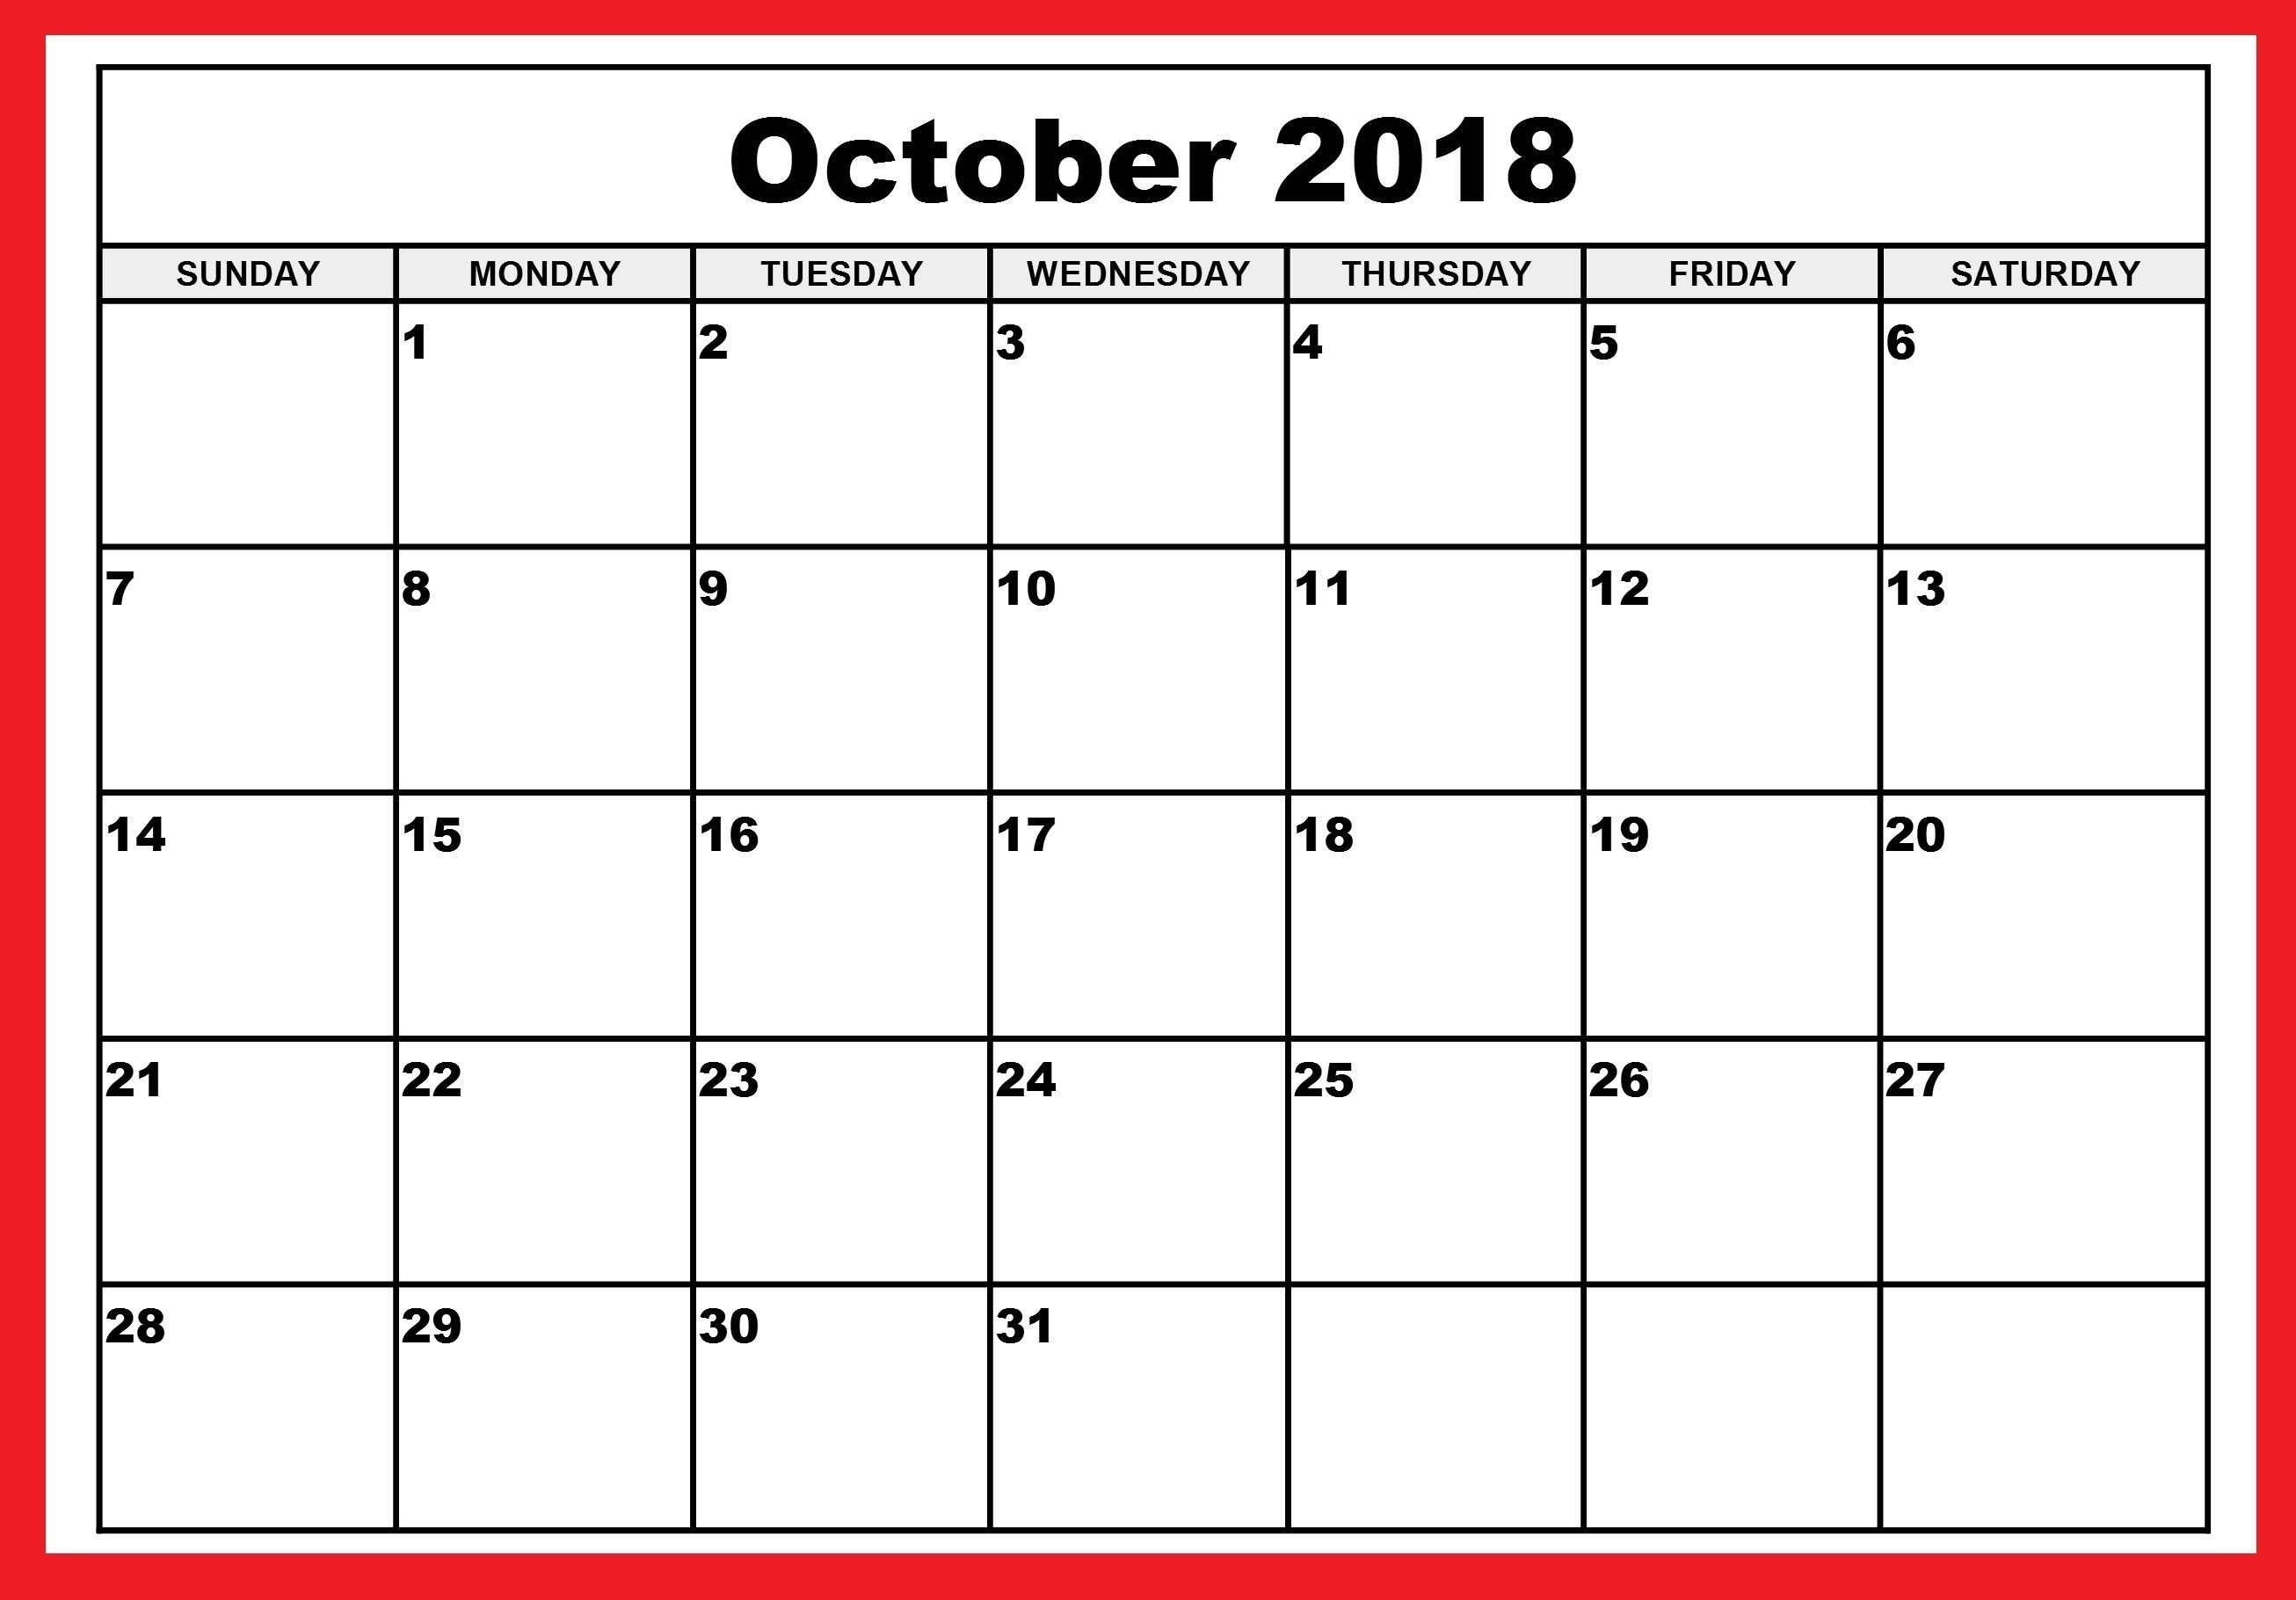 October Blank Calendar Monday To Friday Only | Template Calendar pertaining to October Blank Calendar Monday To Friday Only